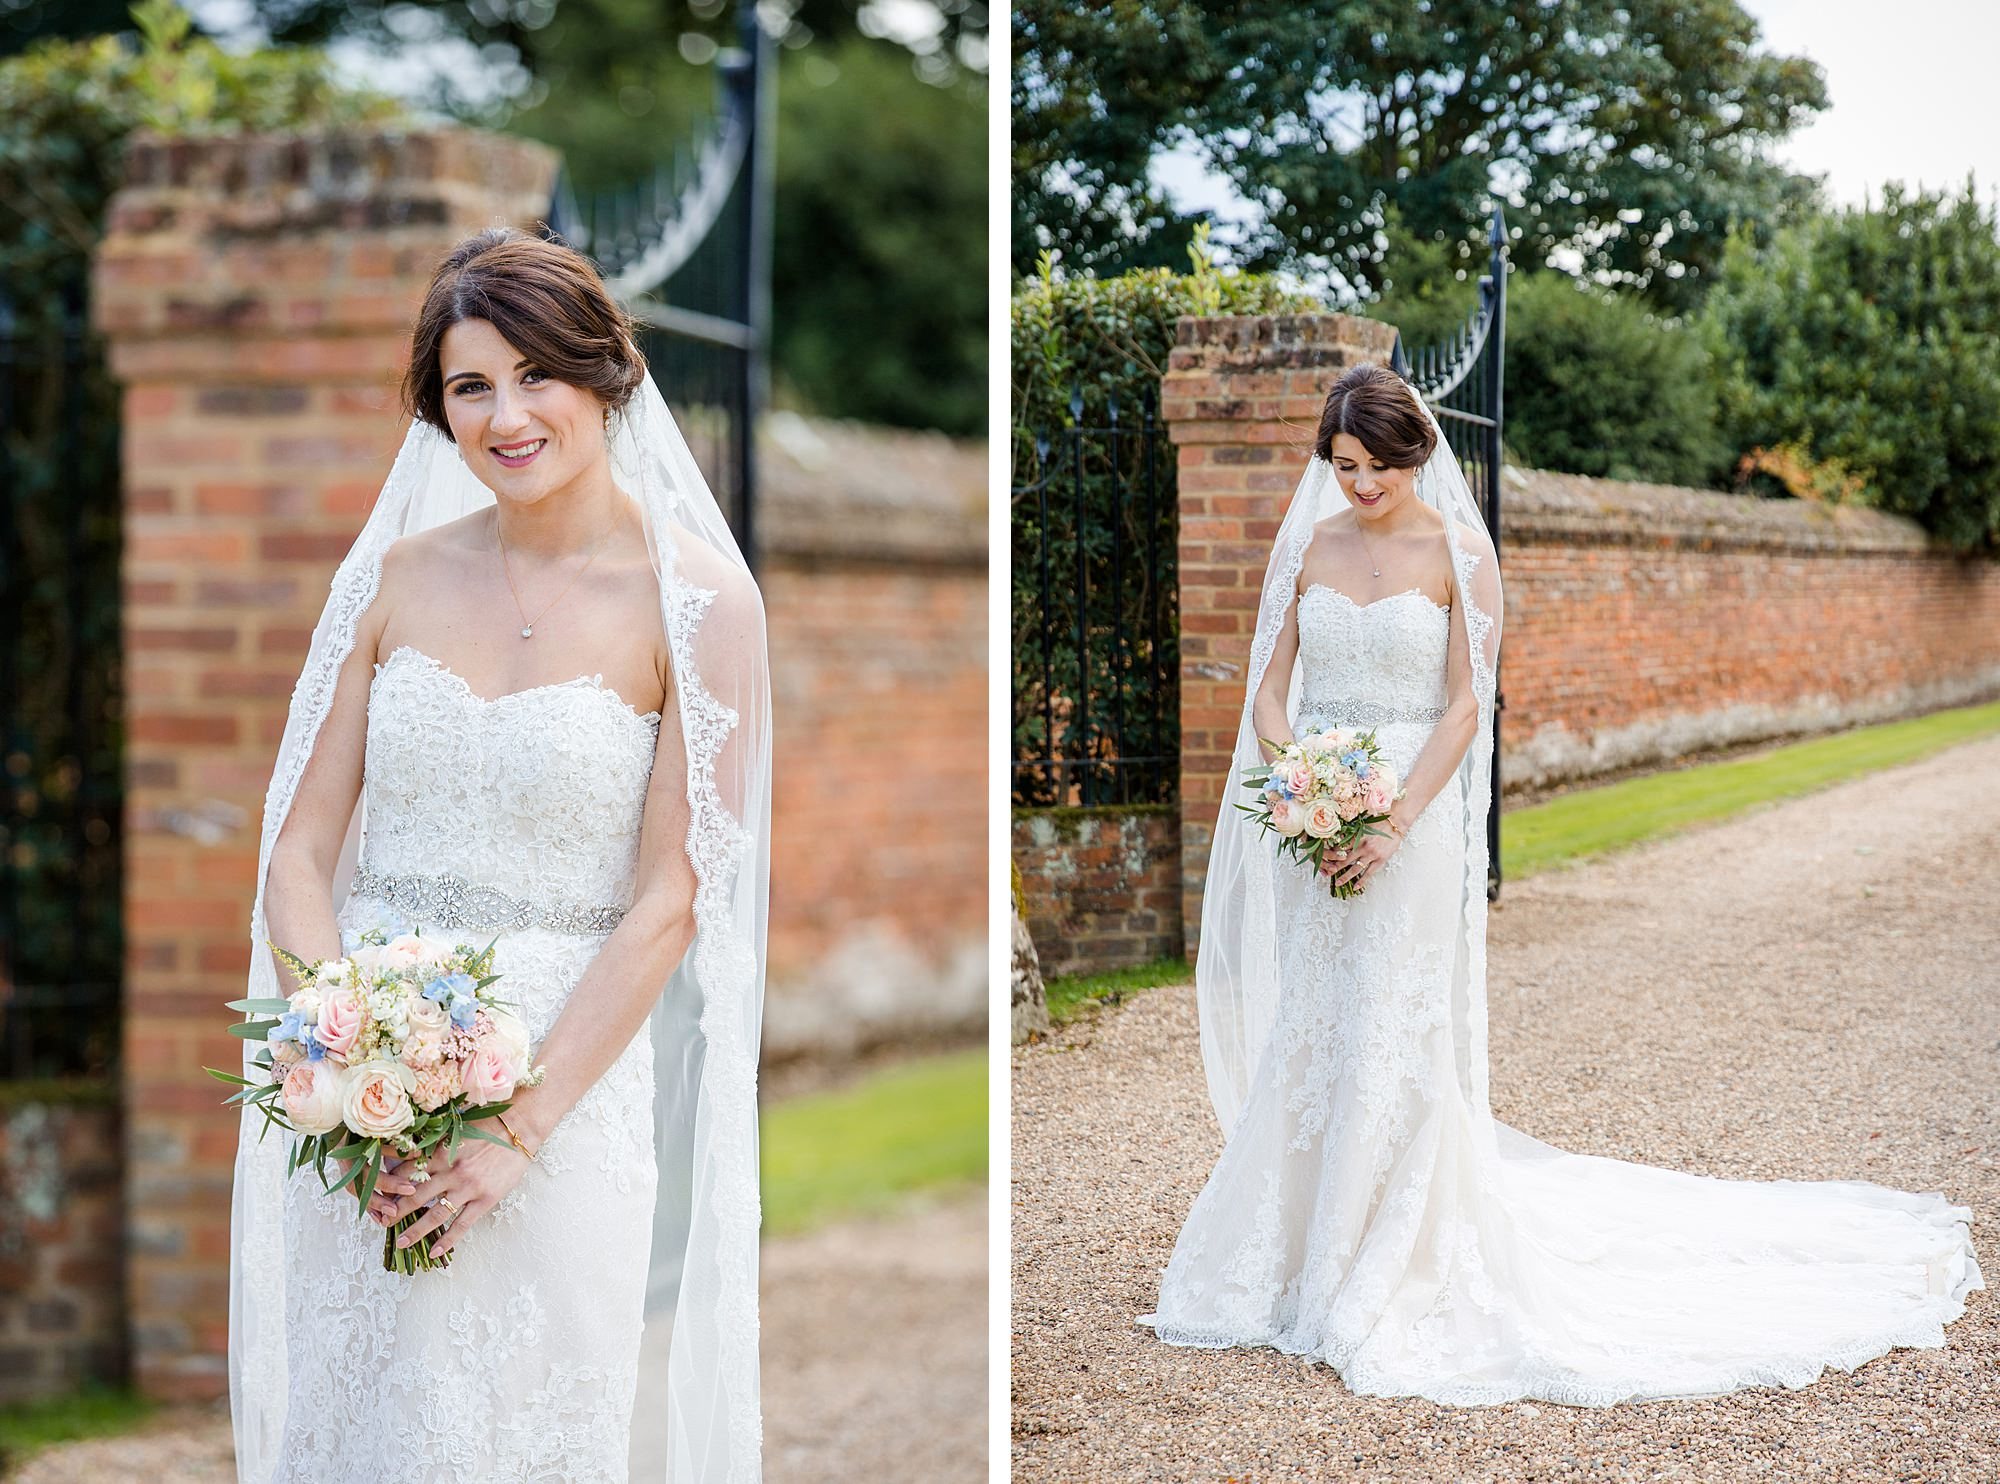 Lillibrooke Manor wedding portrait of bride with her veil